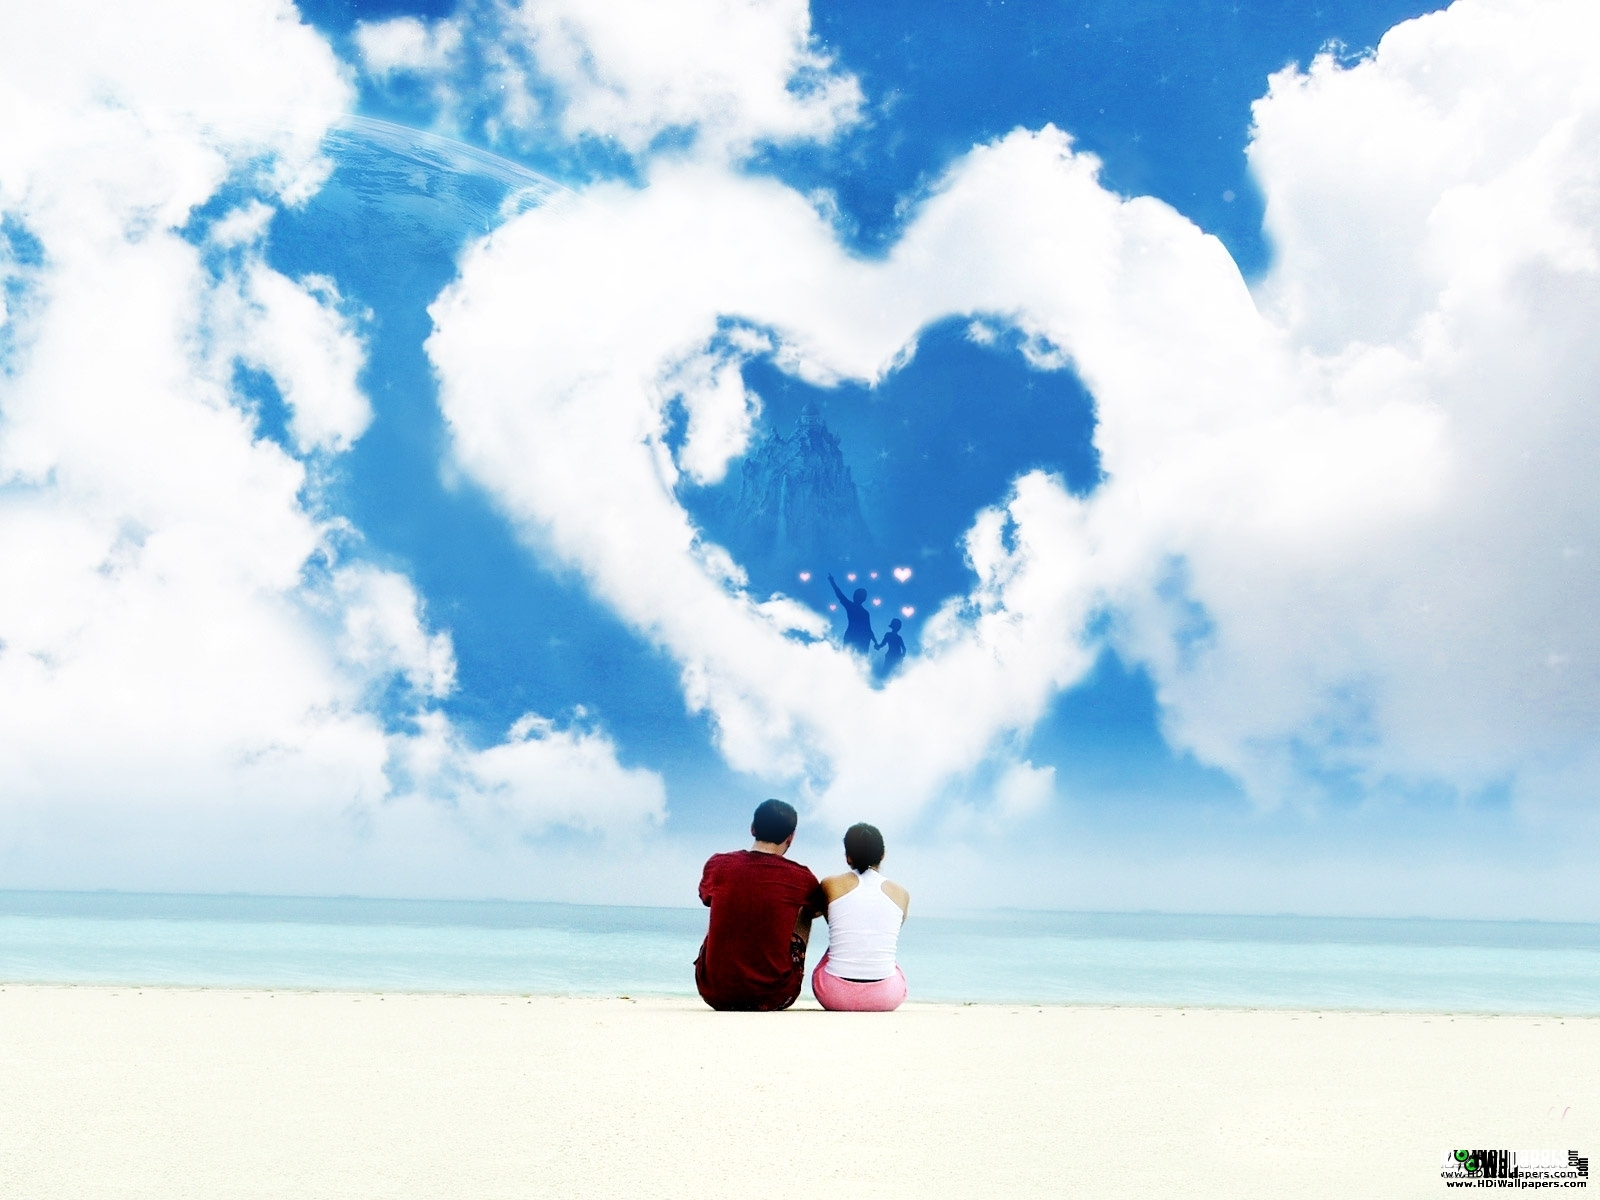 Romantic Love Hd Images Free Download 8 cool Hd Wallpaper - Hdlovewall.com